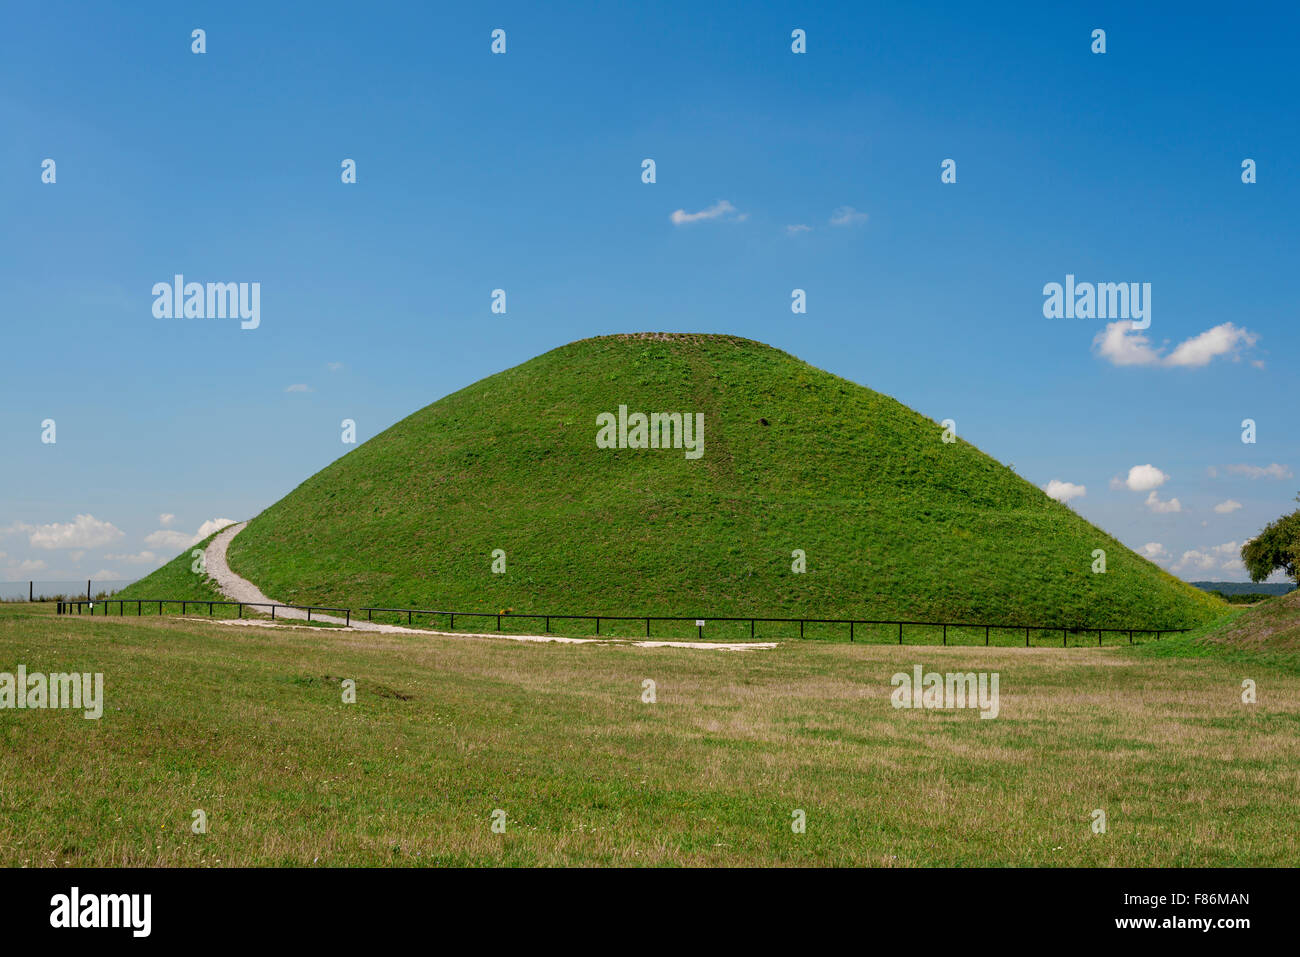 Pologne Cracovie. Krakus Mound Photo Stock